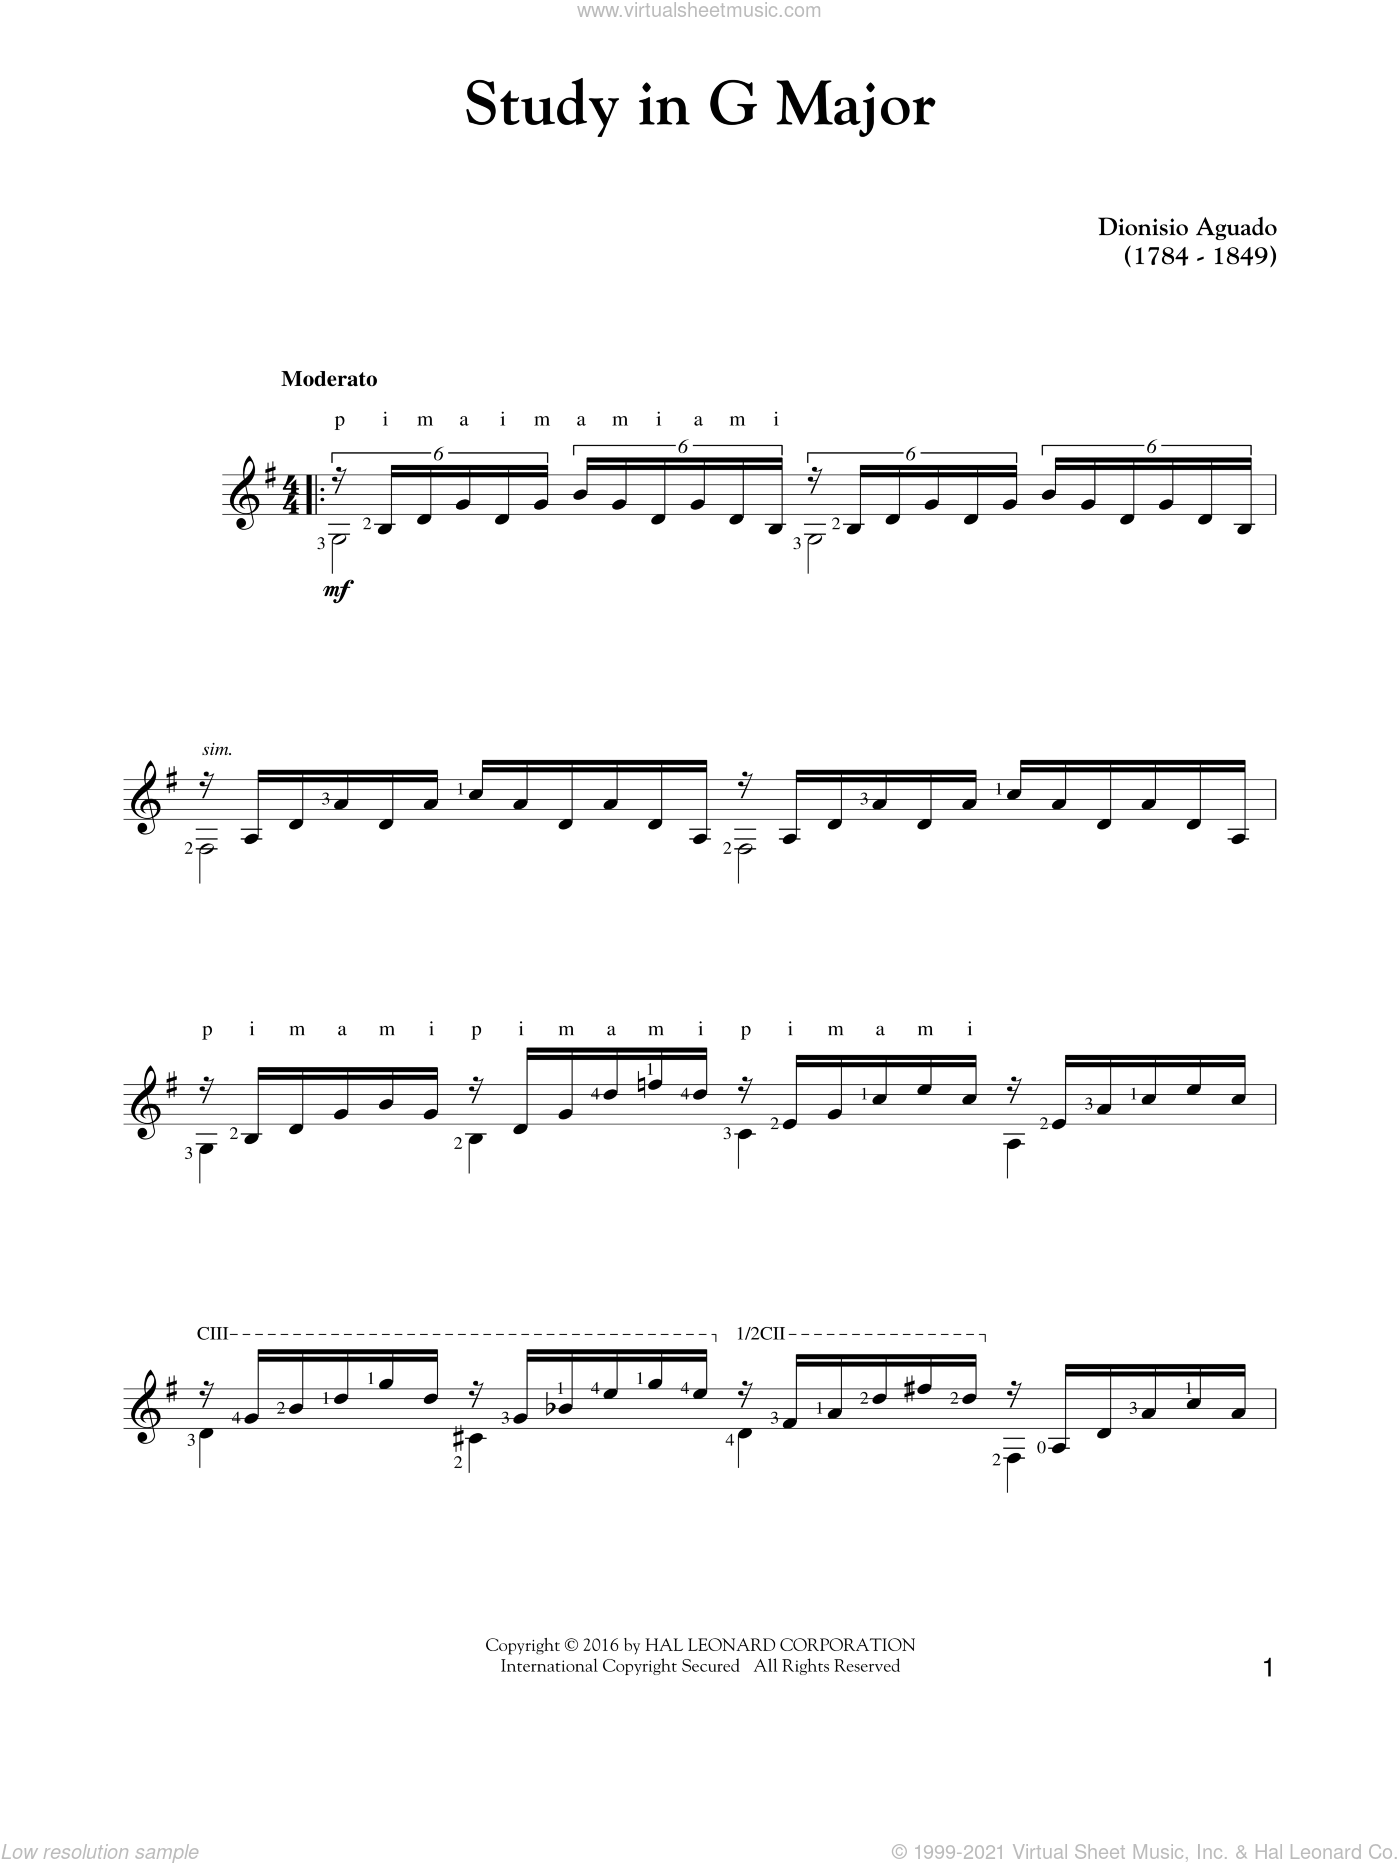 Study In G Major sheet music for guitar solo by Garcia Dionisio Aguado, classical score, intermediate skill level